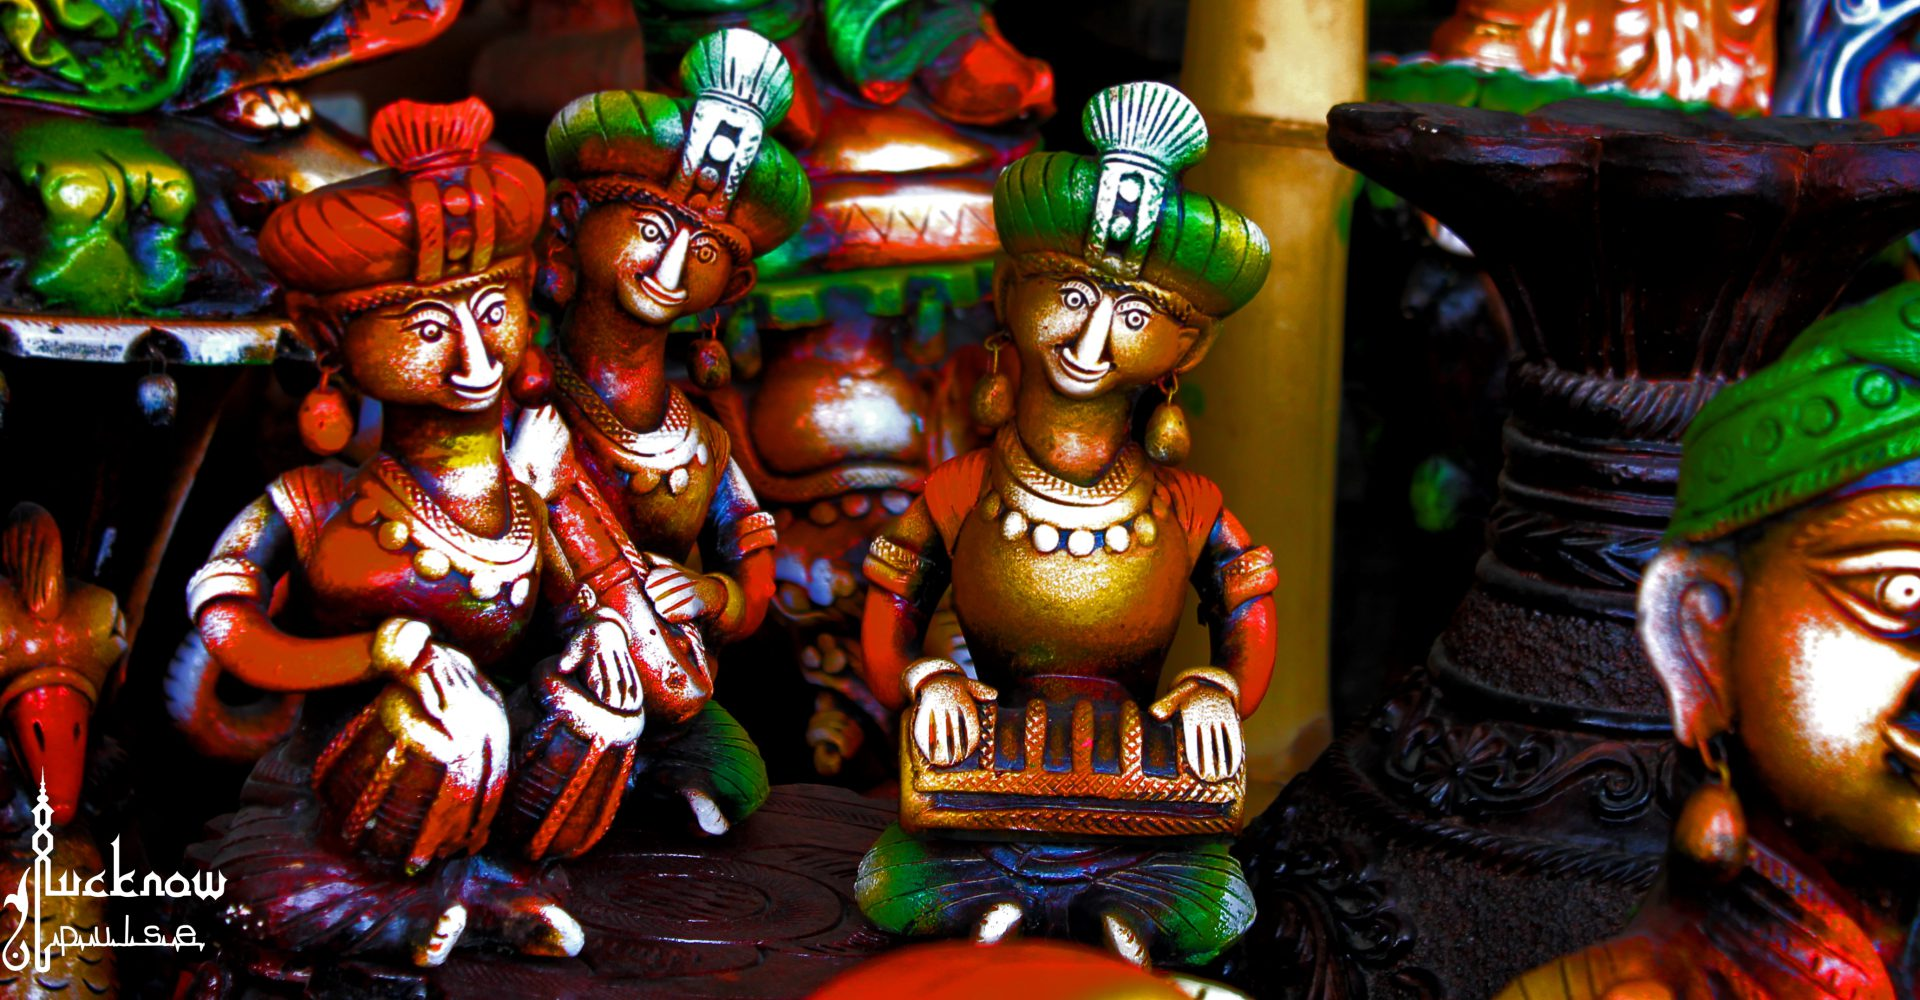 Picture of pottery work on roadside display at Lucknow.